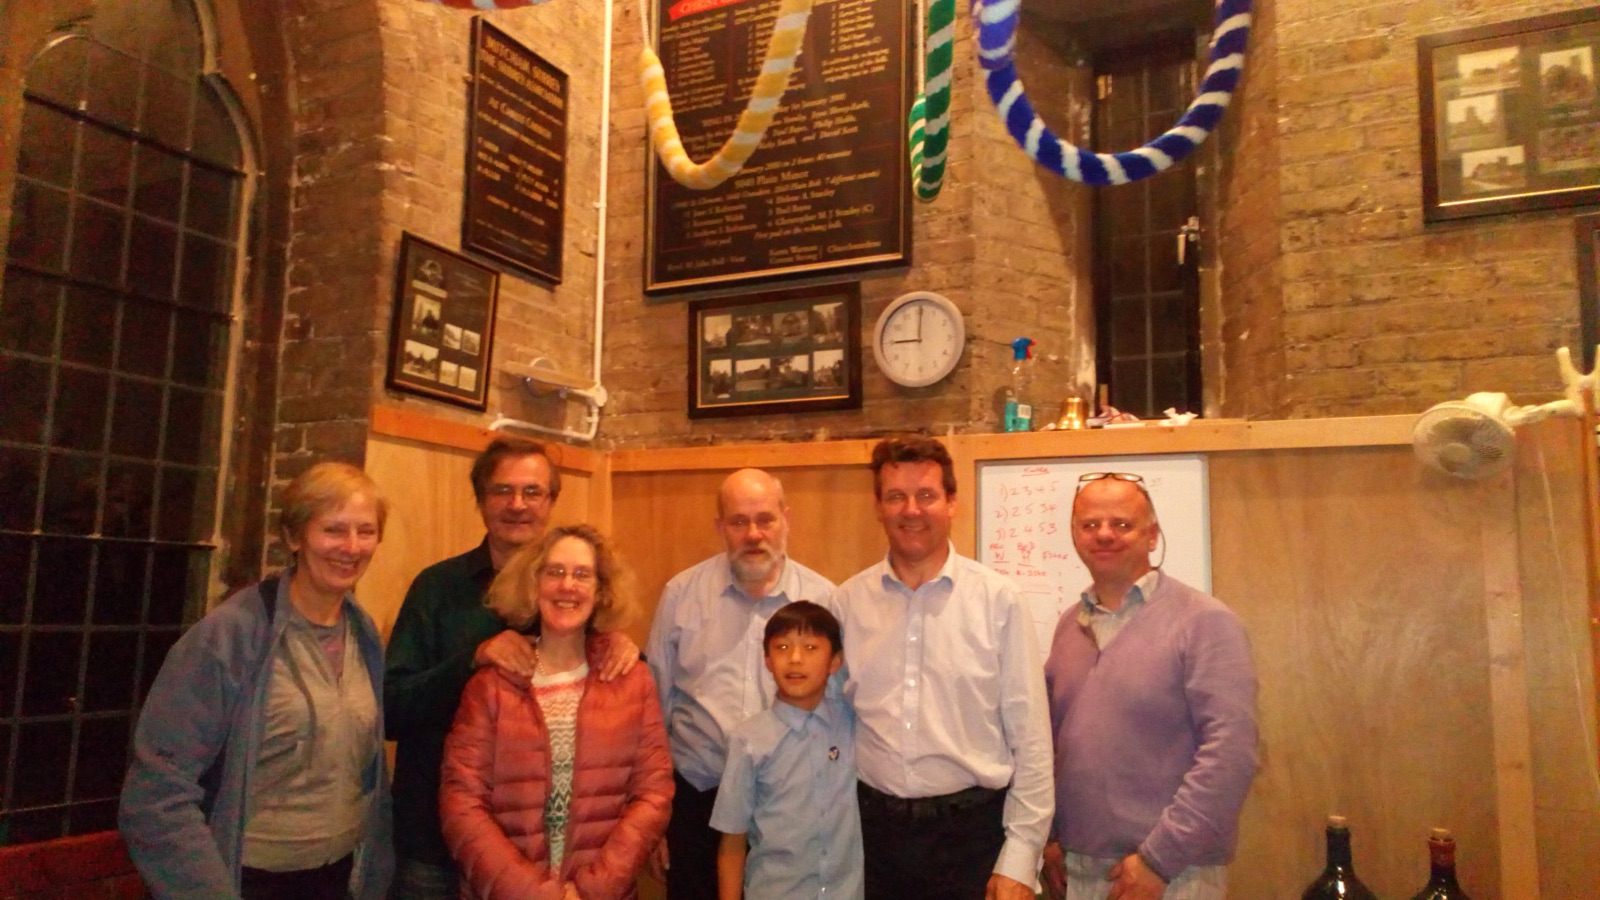 Christ Church Bell Ringer Group